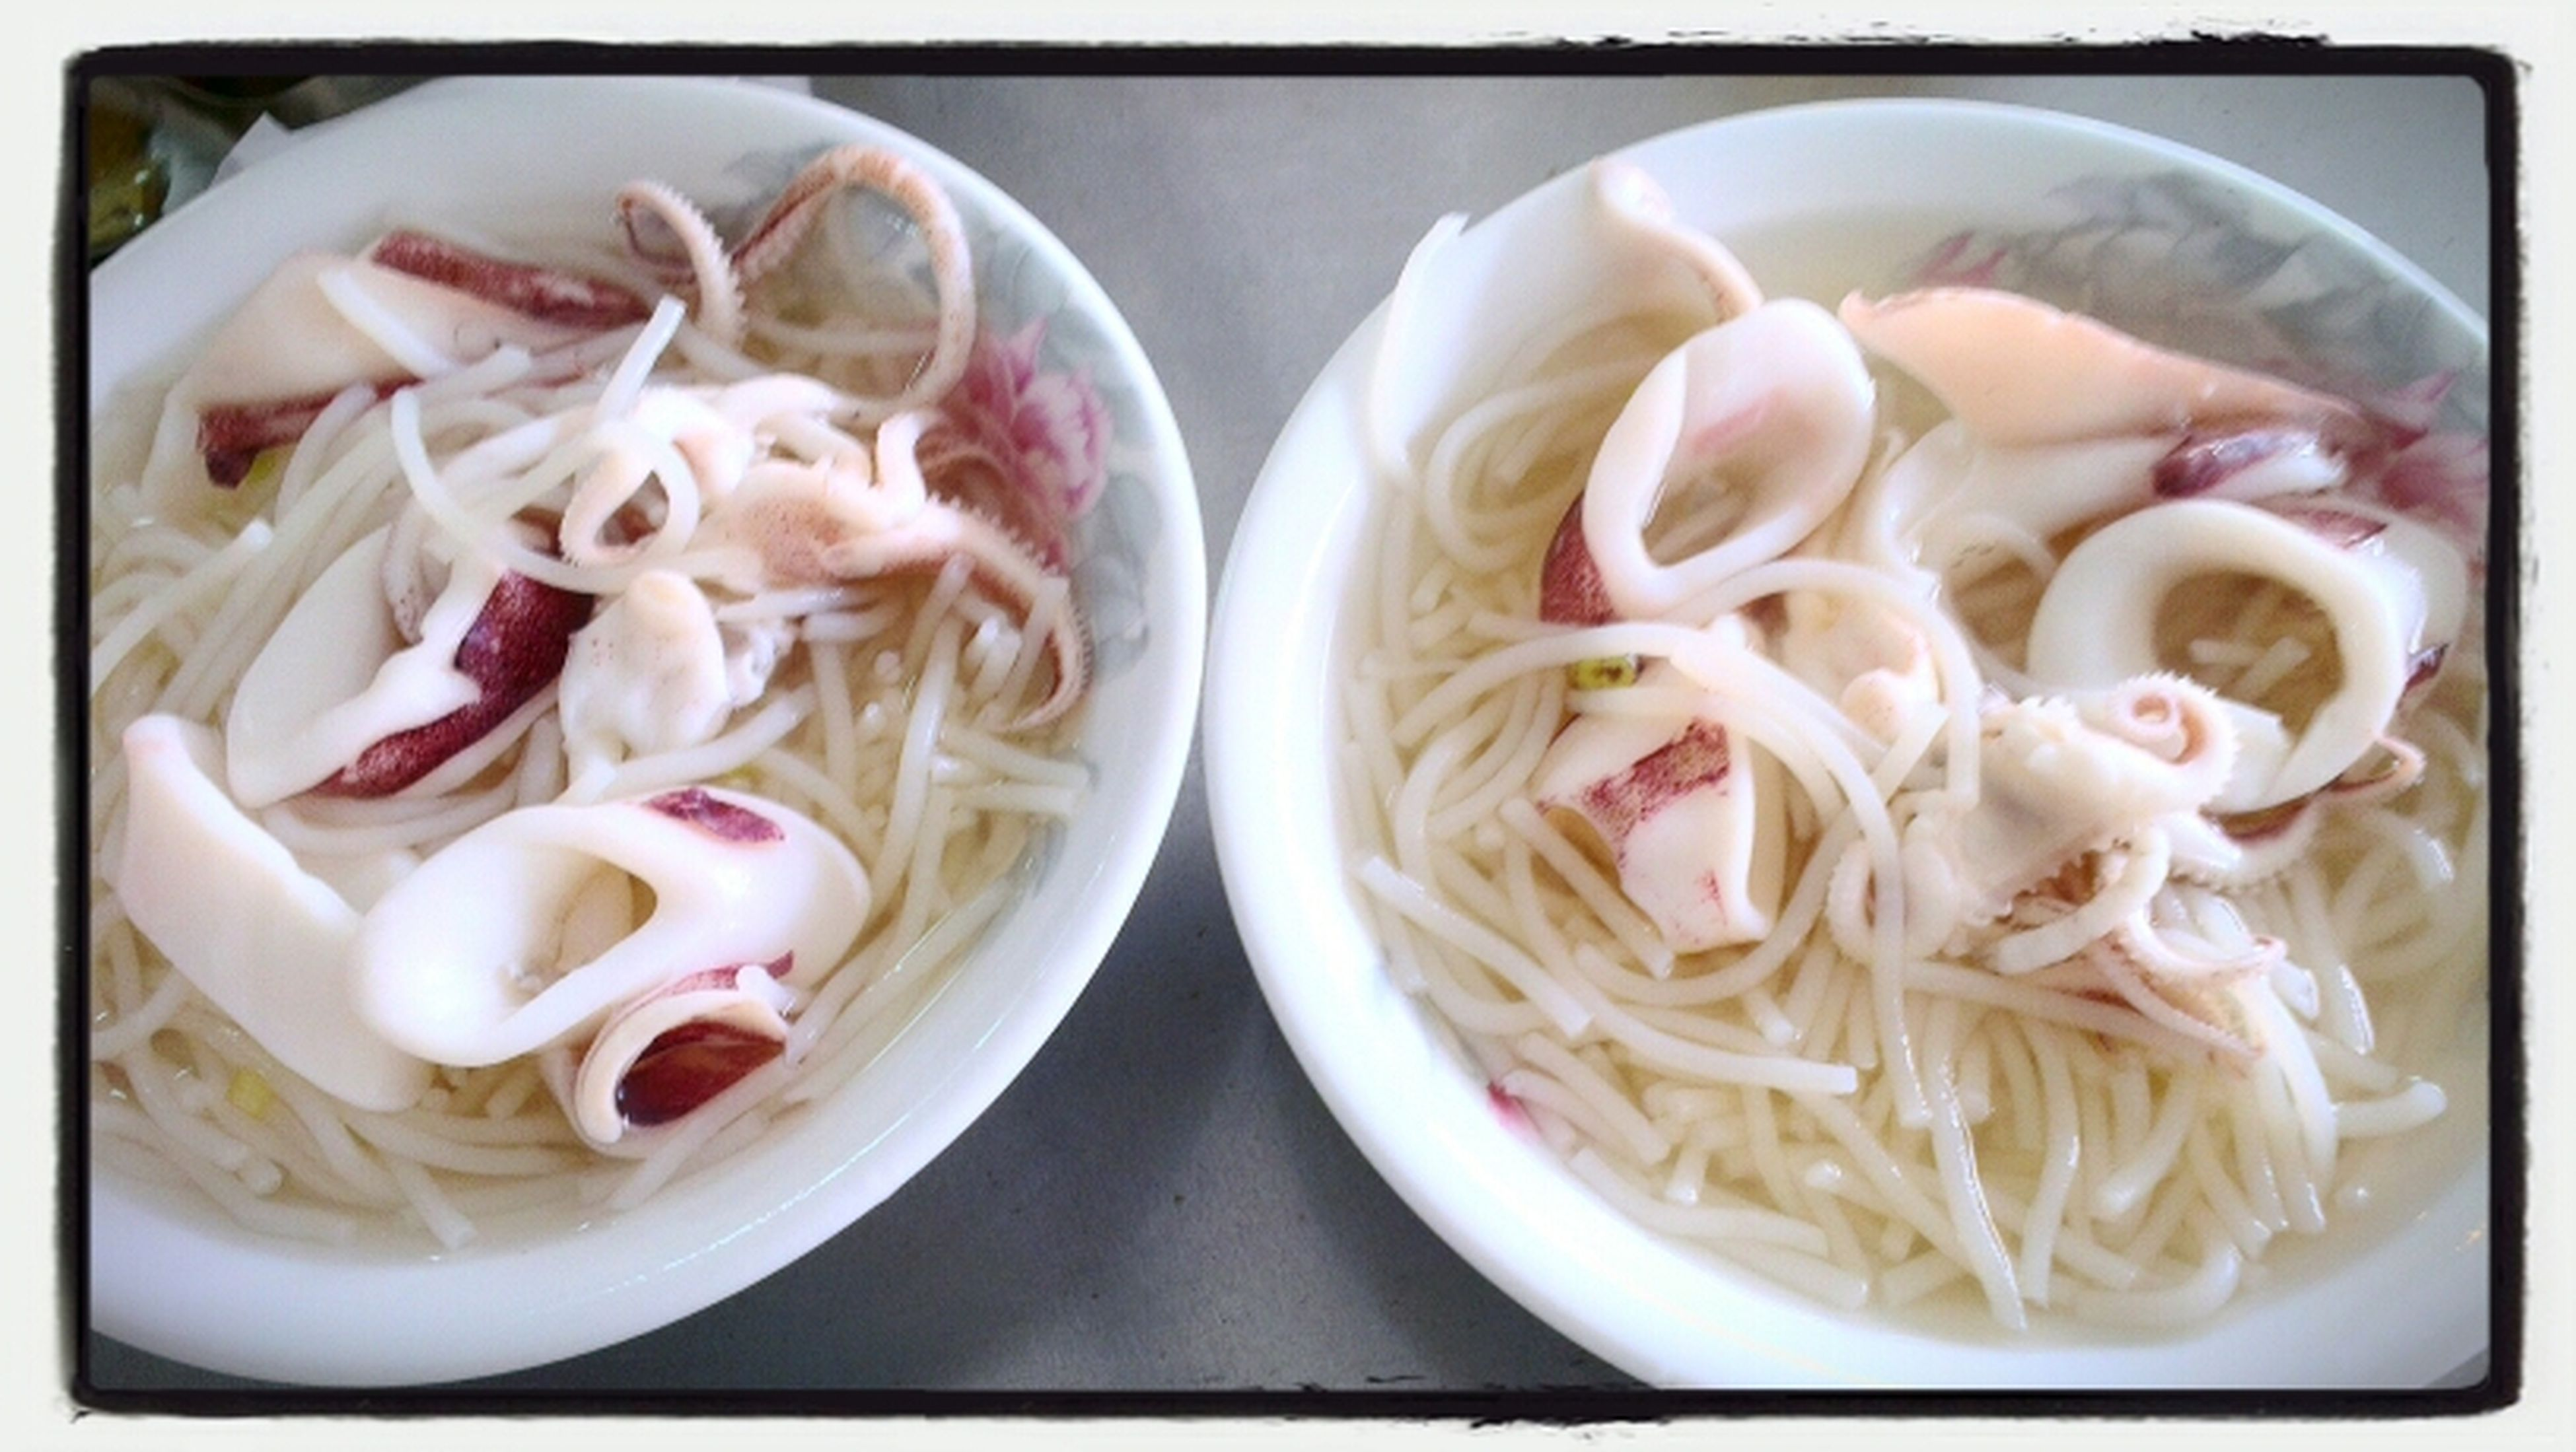 food and drink, food, indoors, freshness, ready-to-eat, plate, still life, healthy eating, indulgence, meal, bowl, close-up, table, serving size, high angle view, temptation, pasta, italian food, noodles